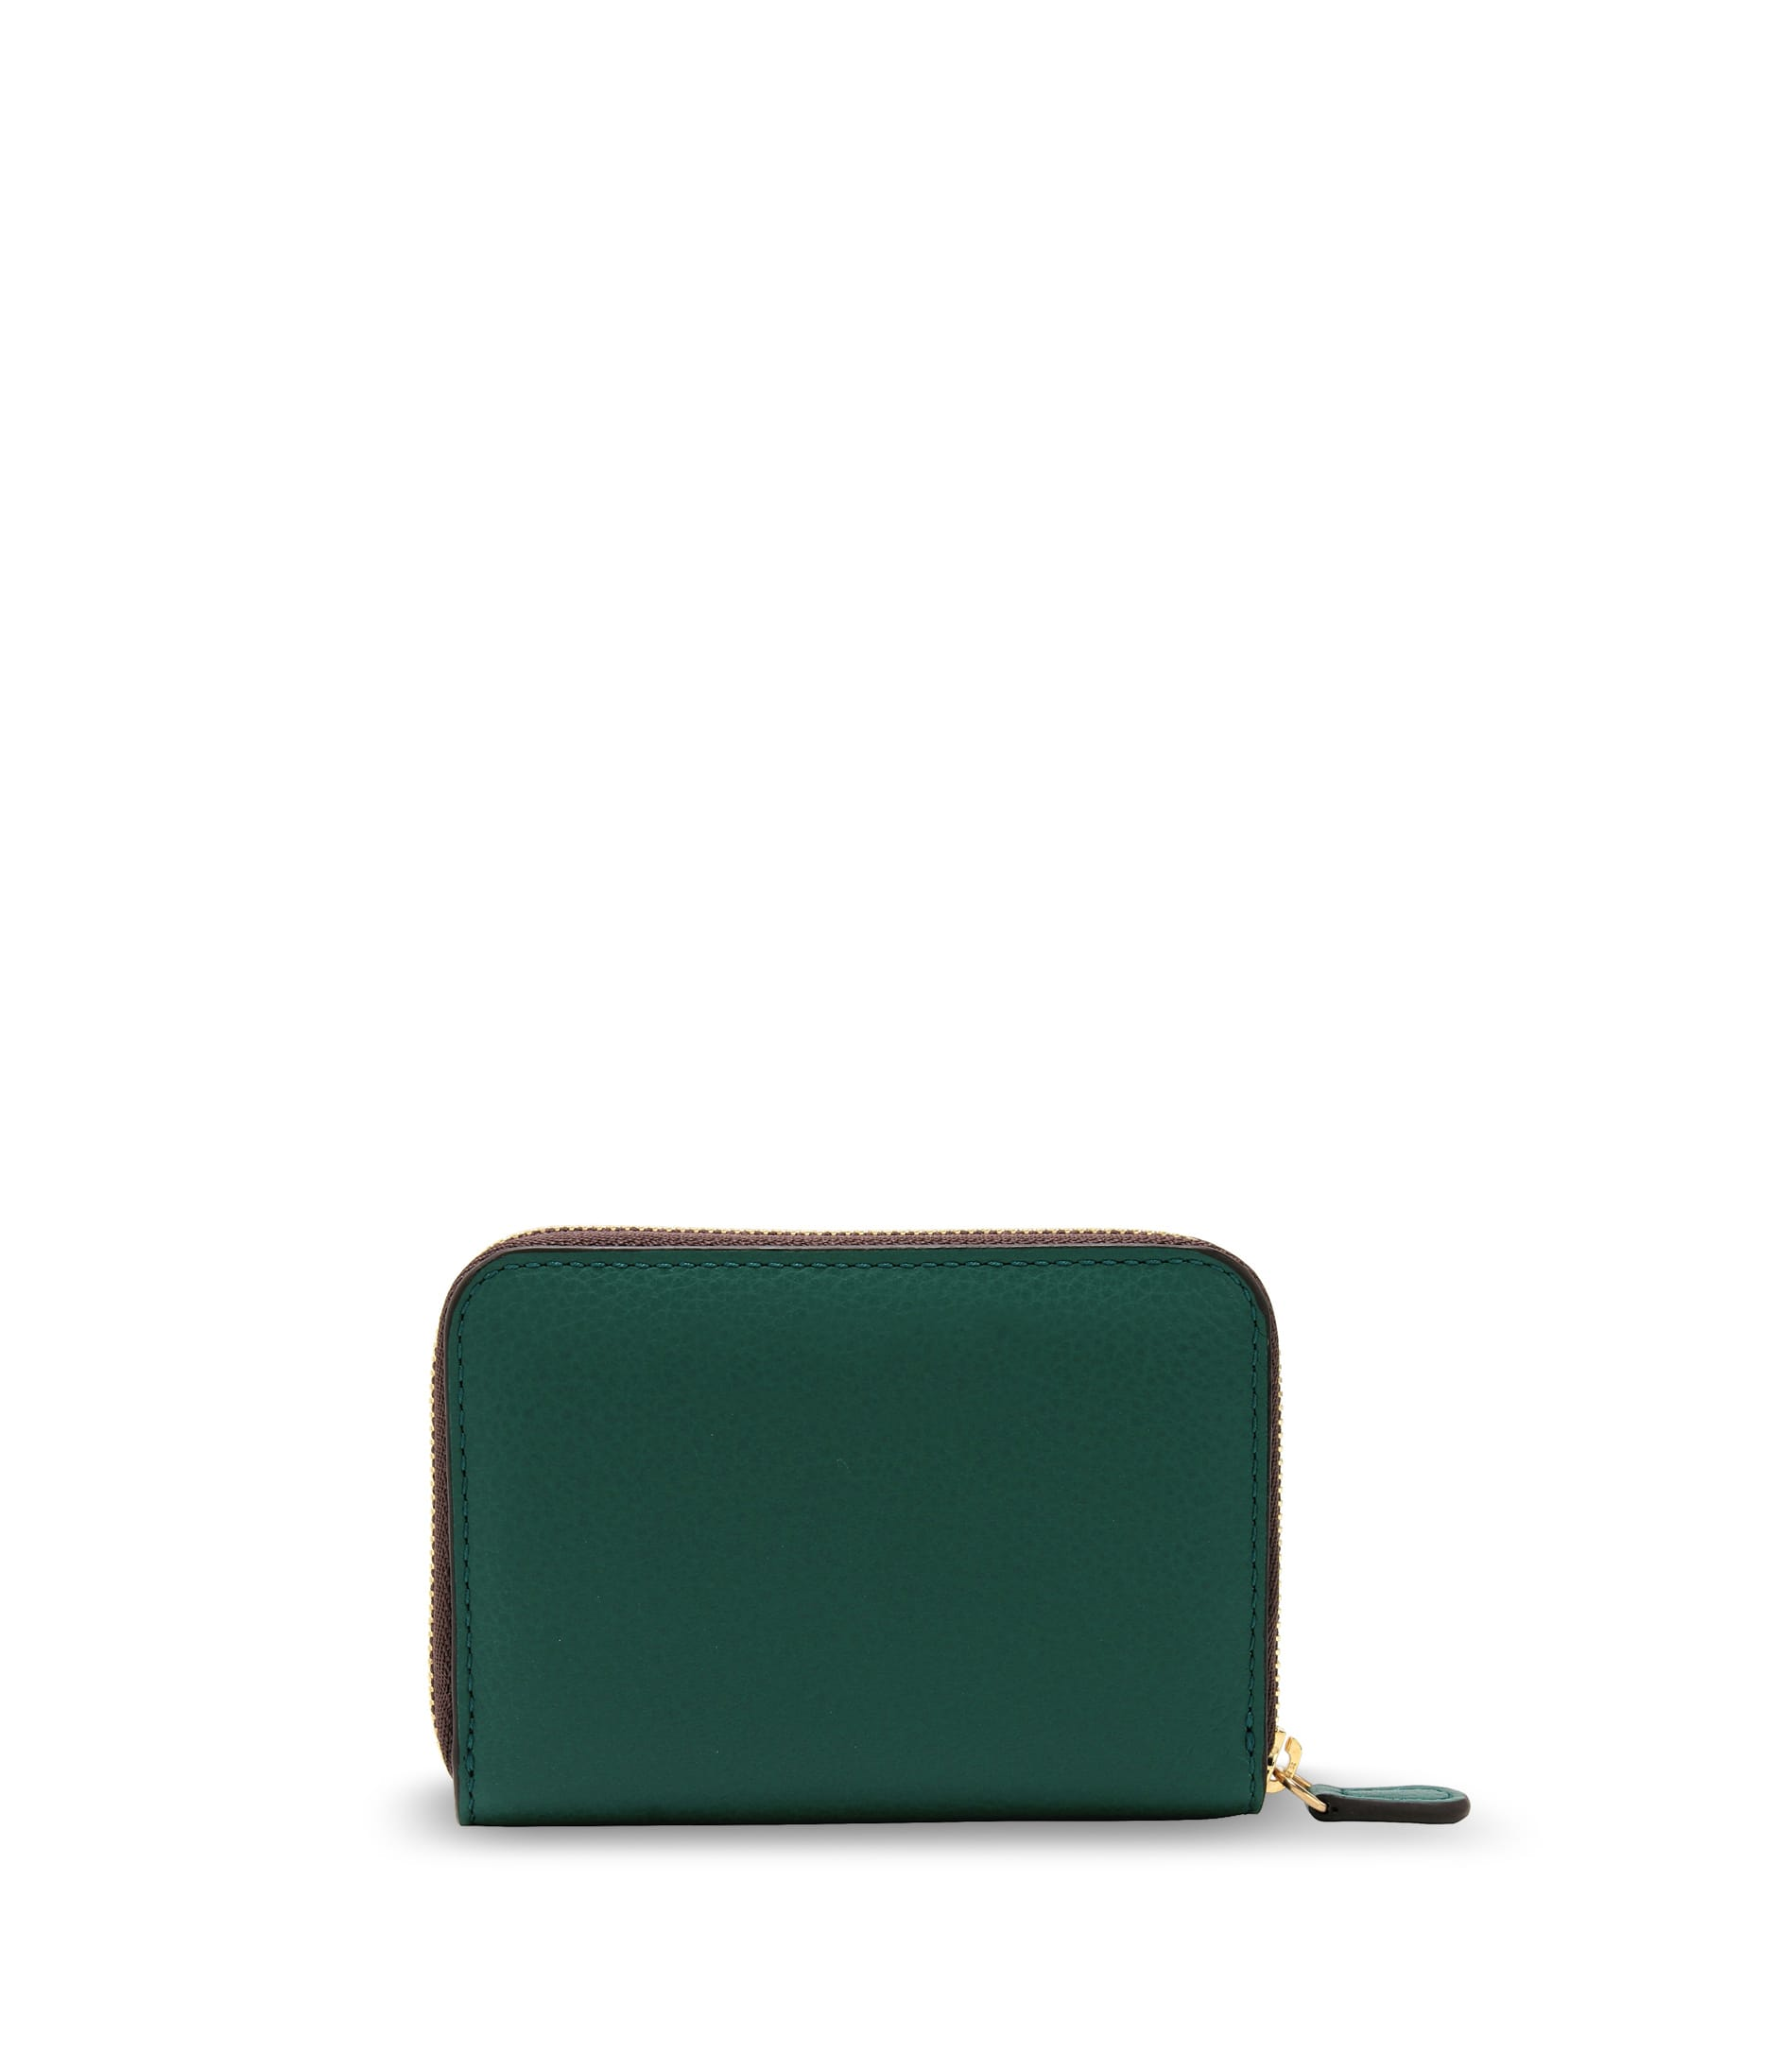 SMALL ZIP PURSE 詳細画像 AVOCADO GREEN 2